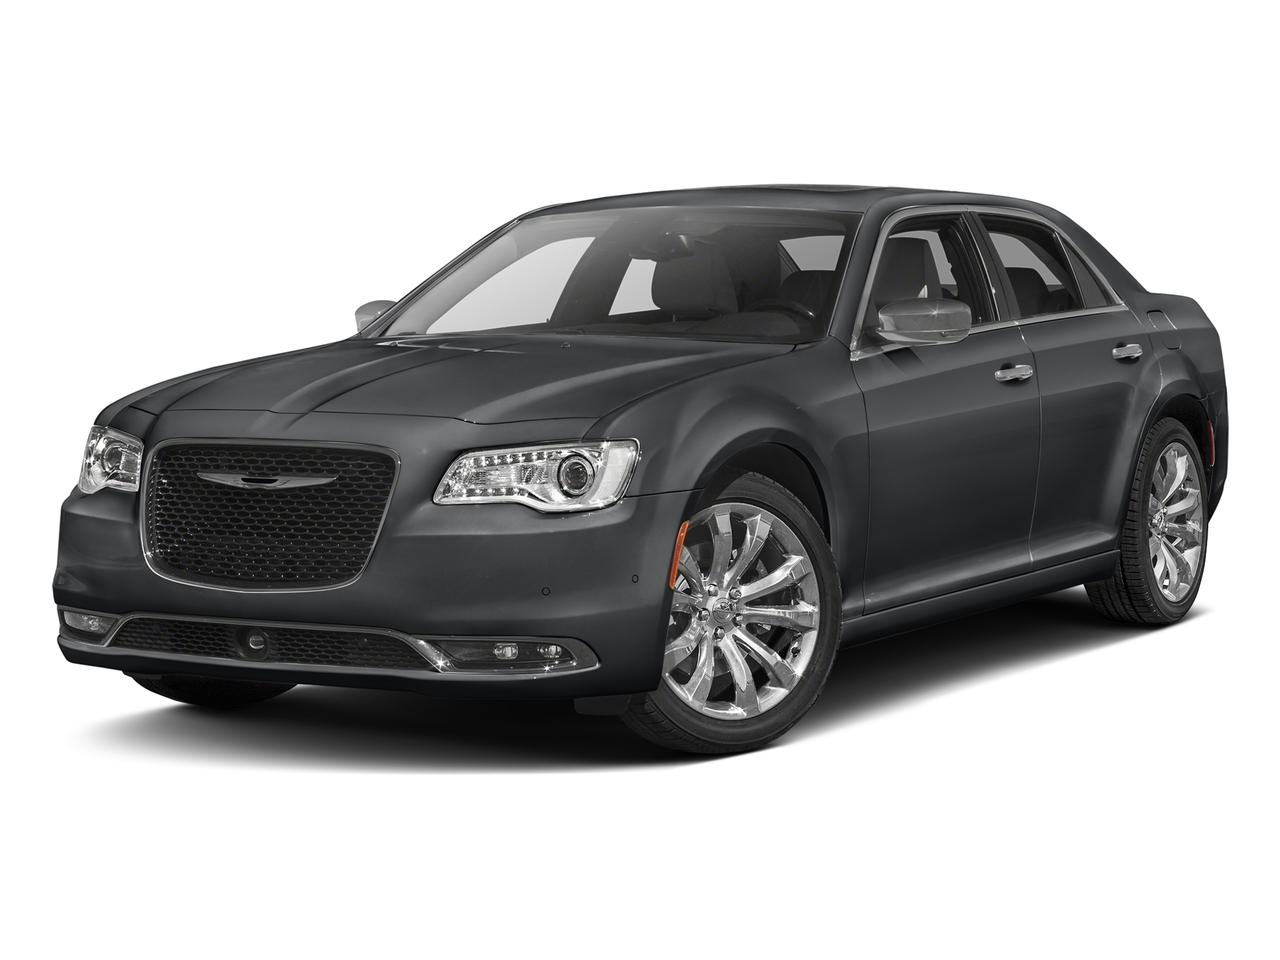 2017 Chrysler 300 Vehicle Photo in Oak Lawn, IL 60453